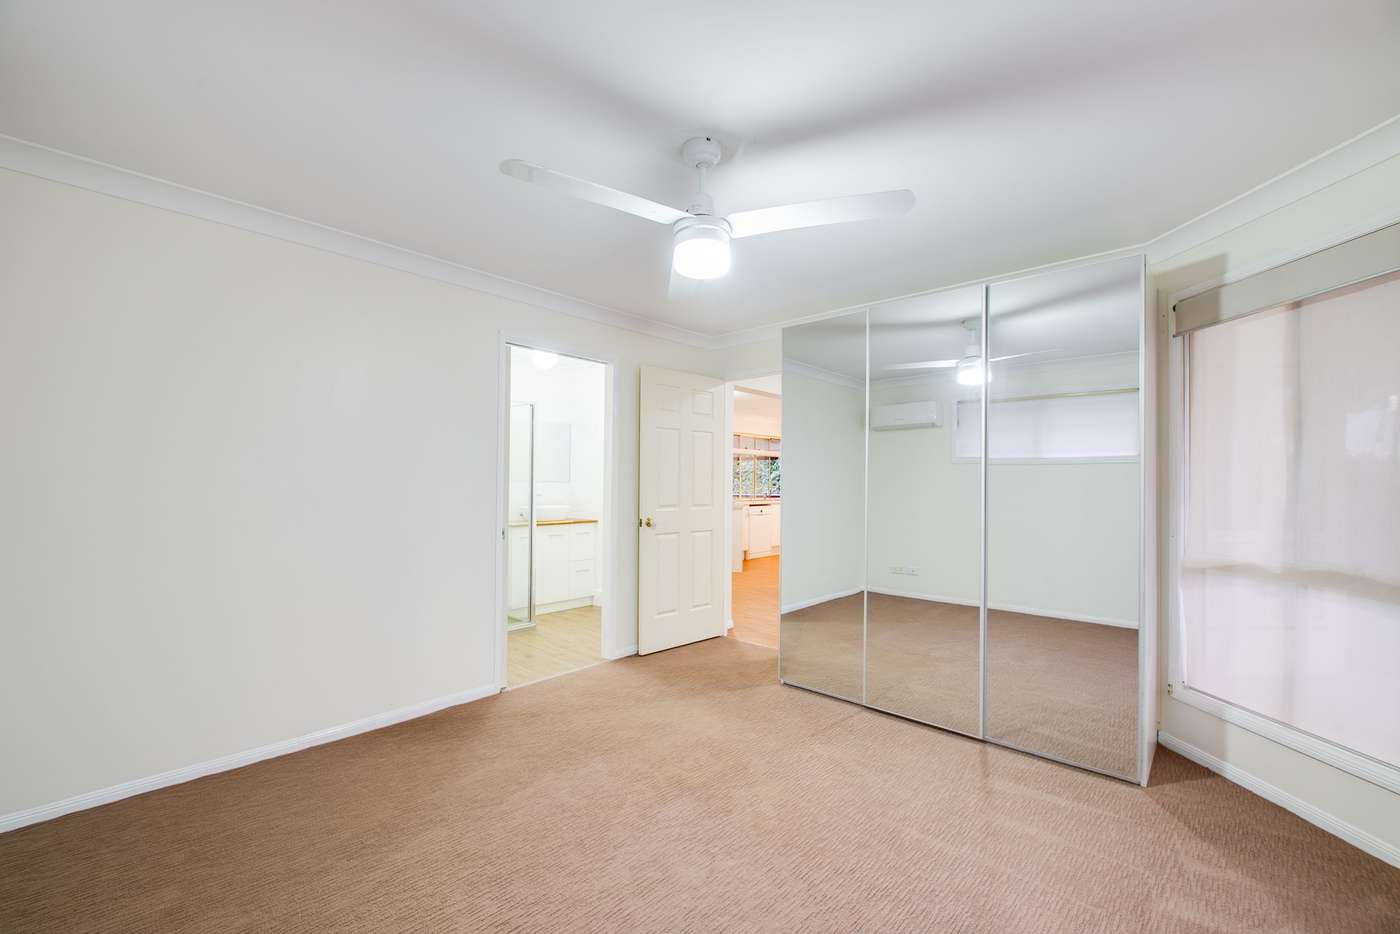 Sixth view of Homely house listing, 19 Sealy Street, Silkstone QLD 4304